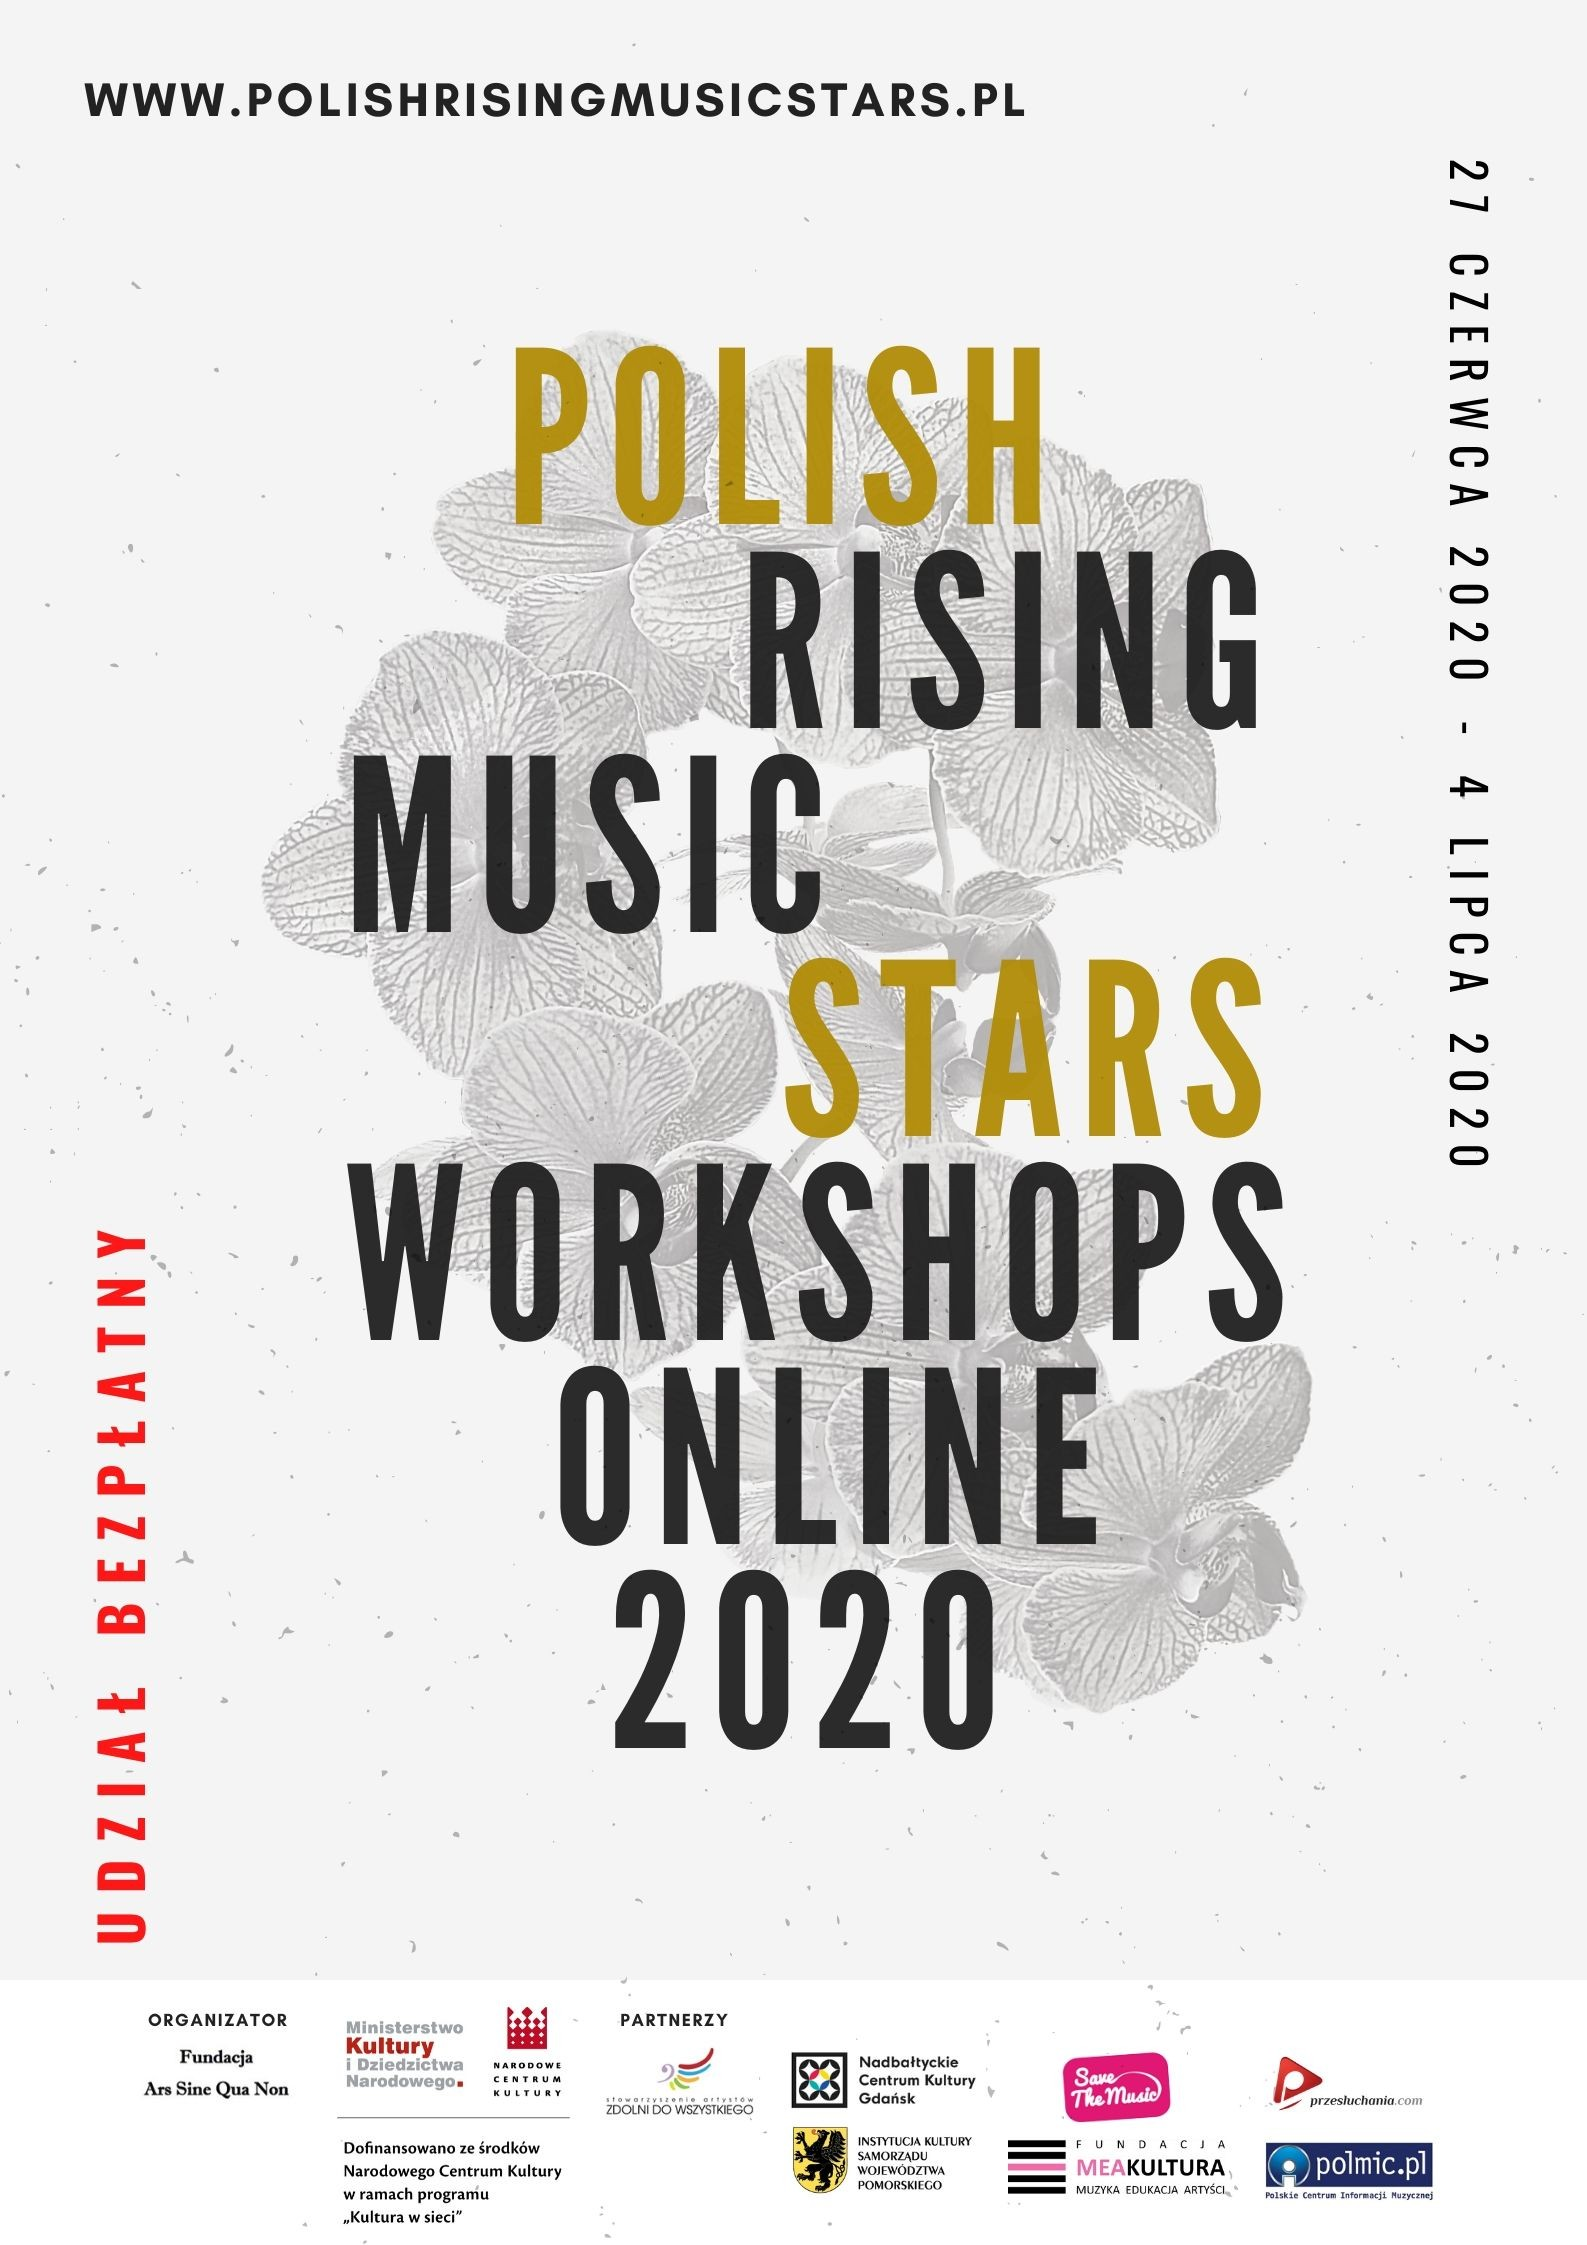 Polish Rising Music Stars Workshops